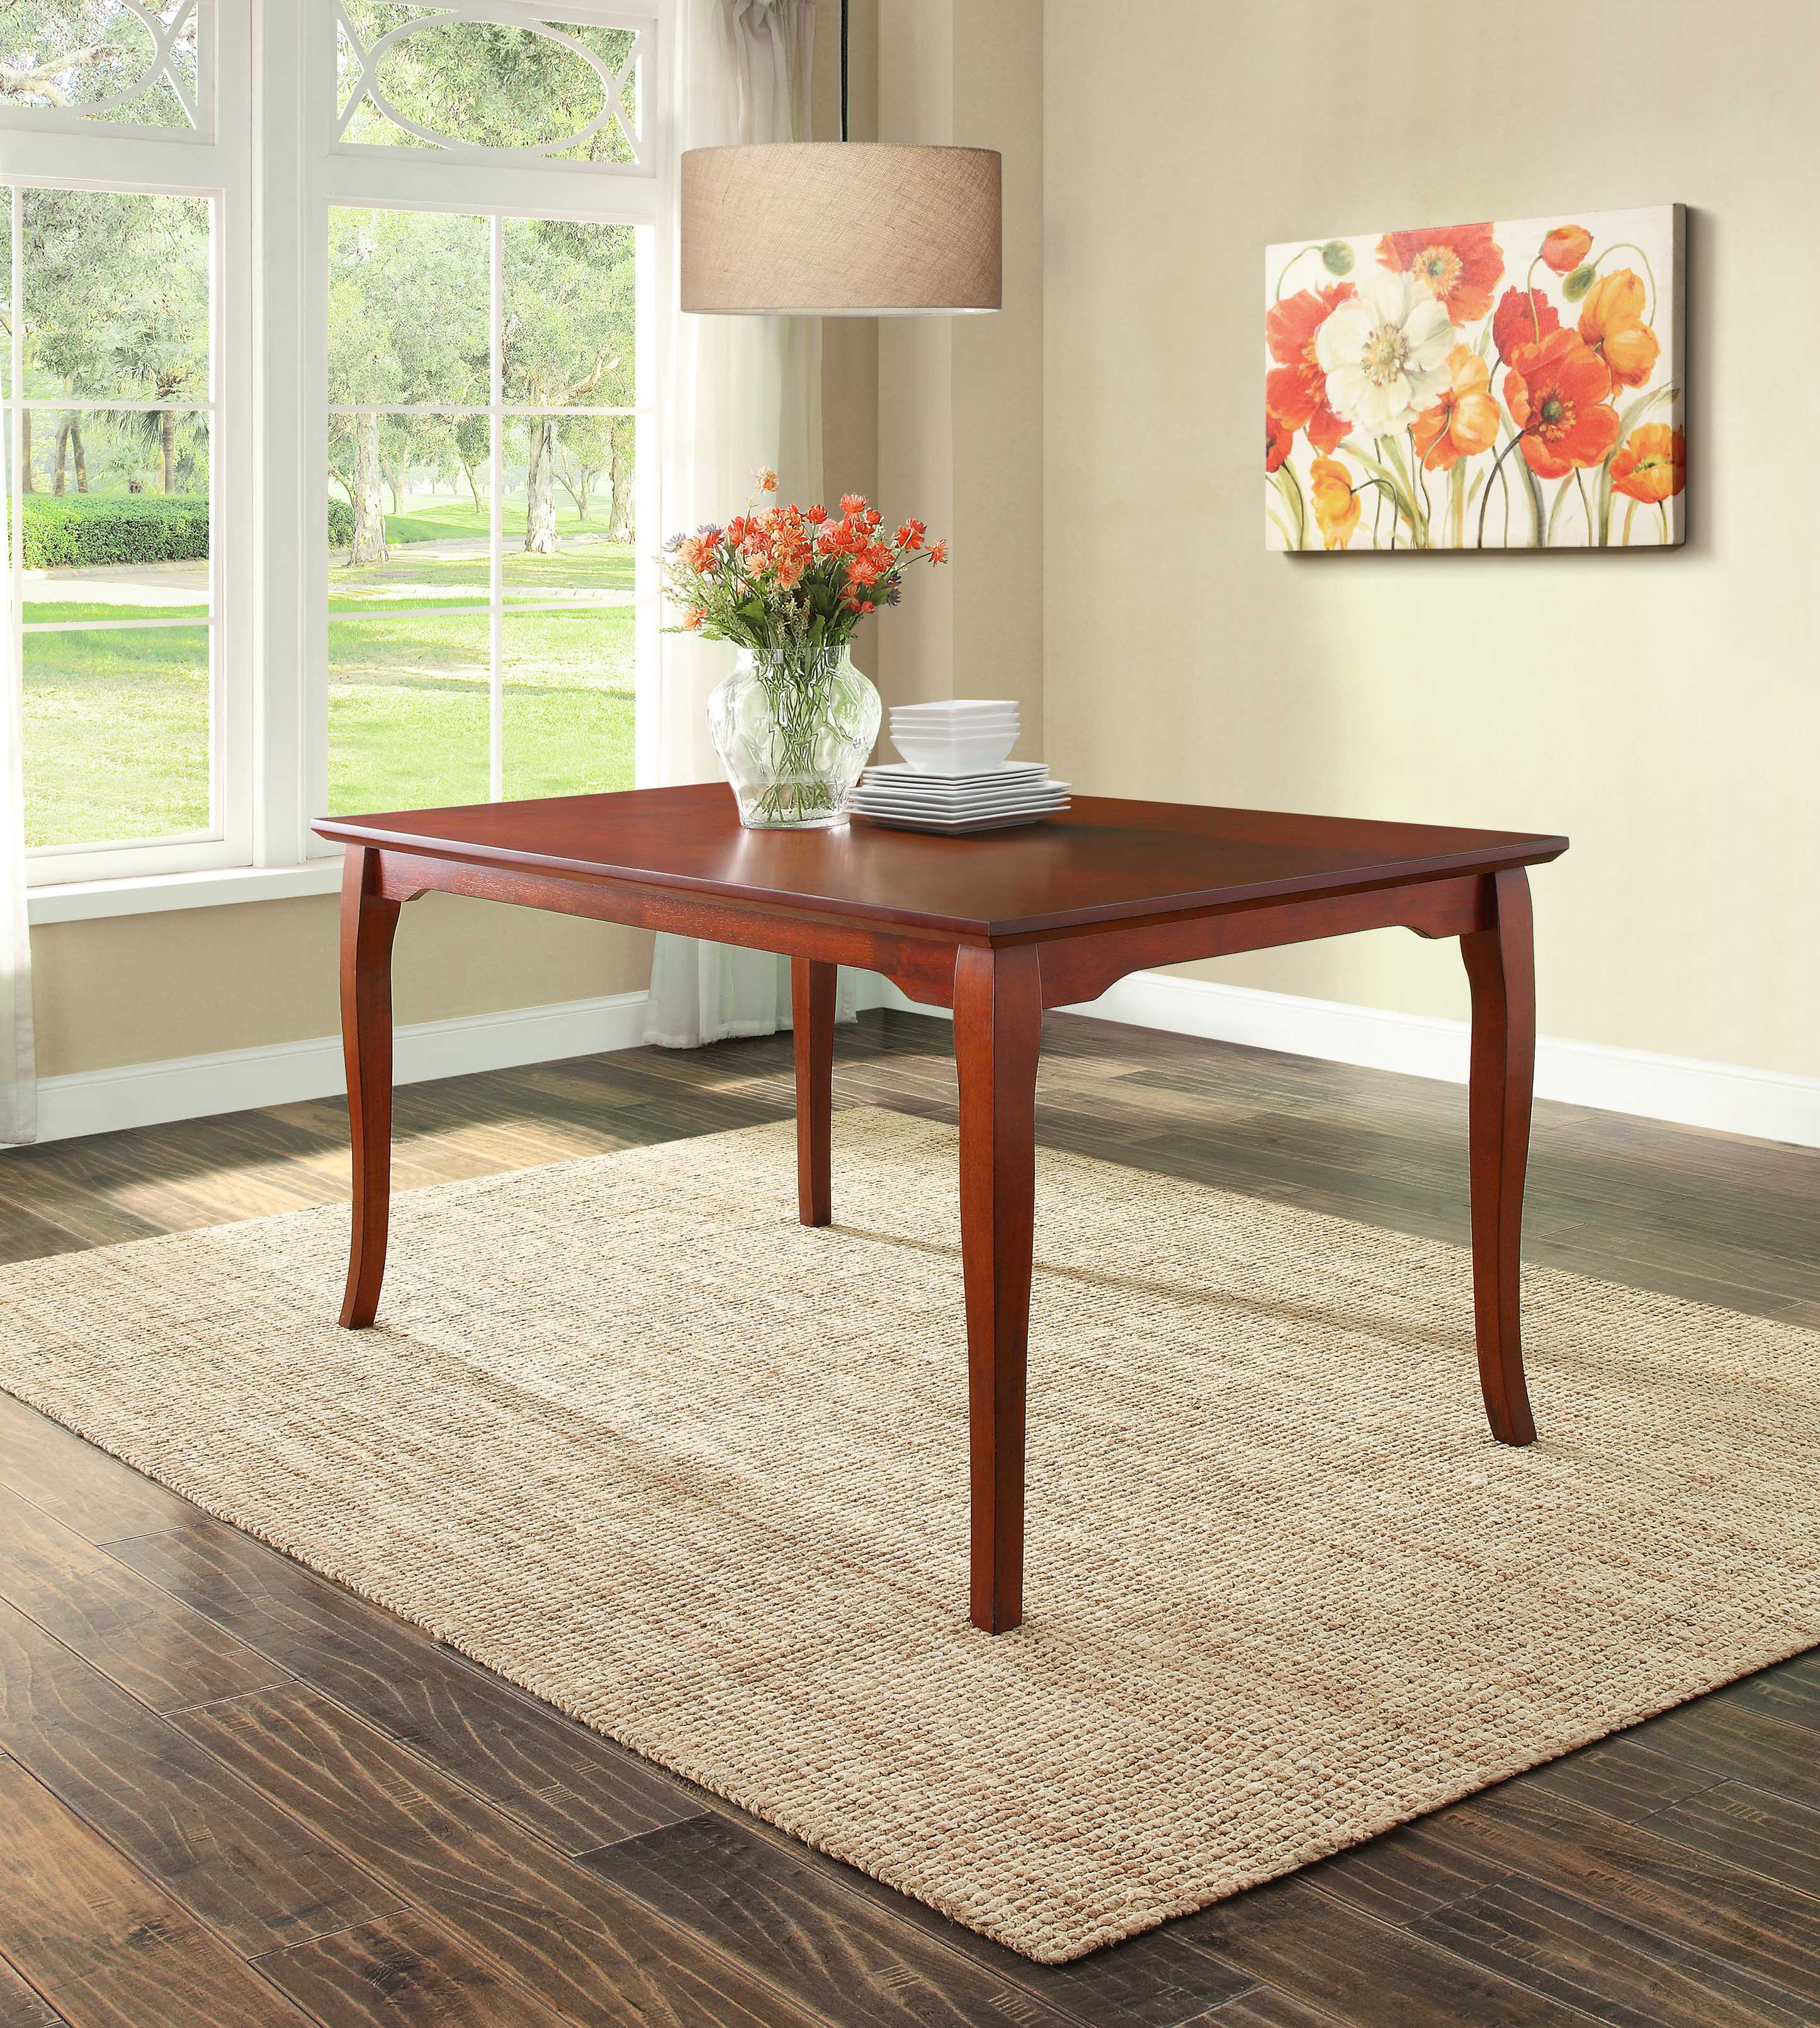 Better homes and gardens autumn lane farmhouse dining table white and natural for Better homes and gardens customer service